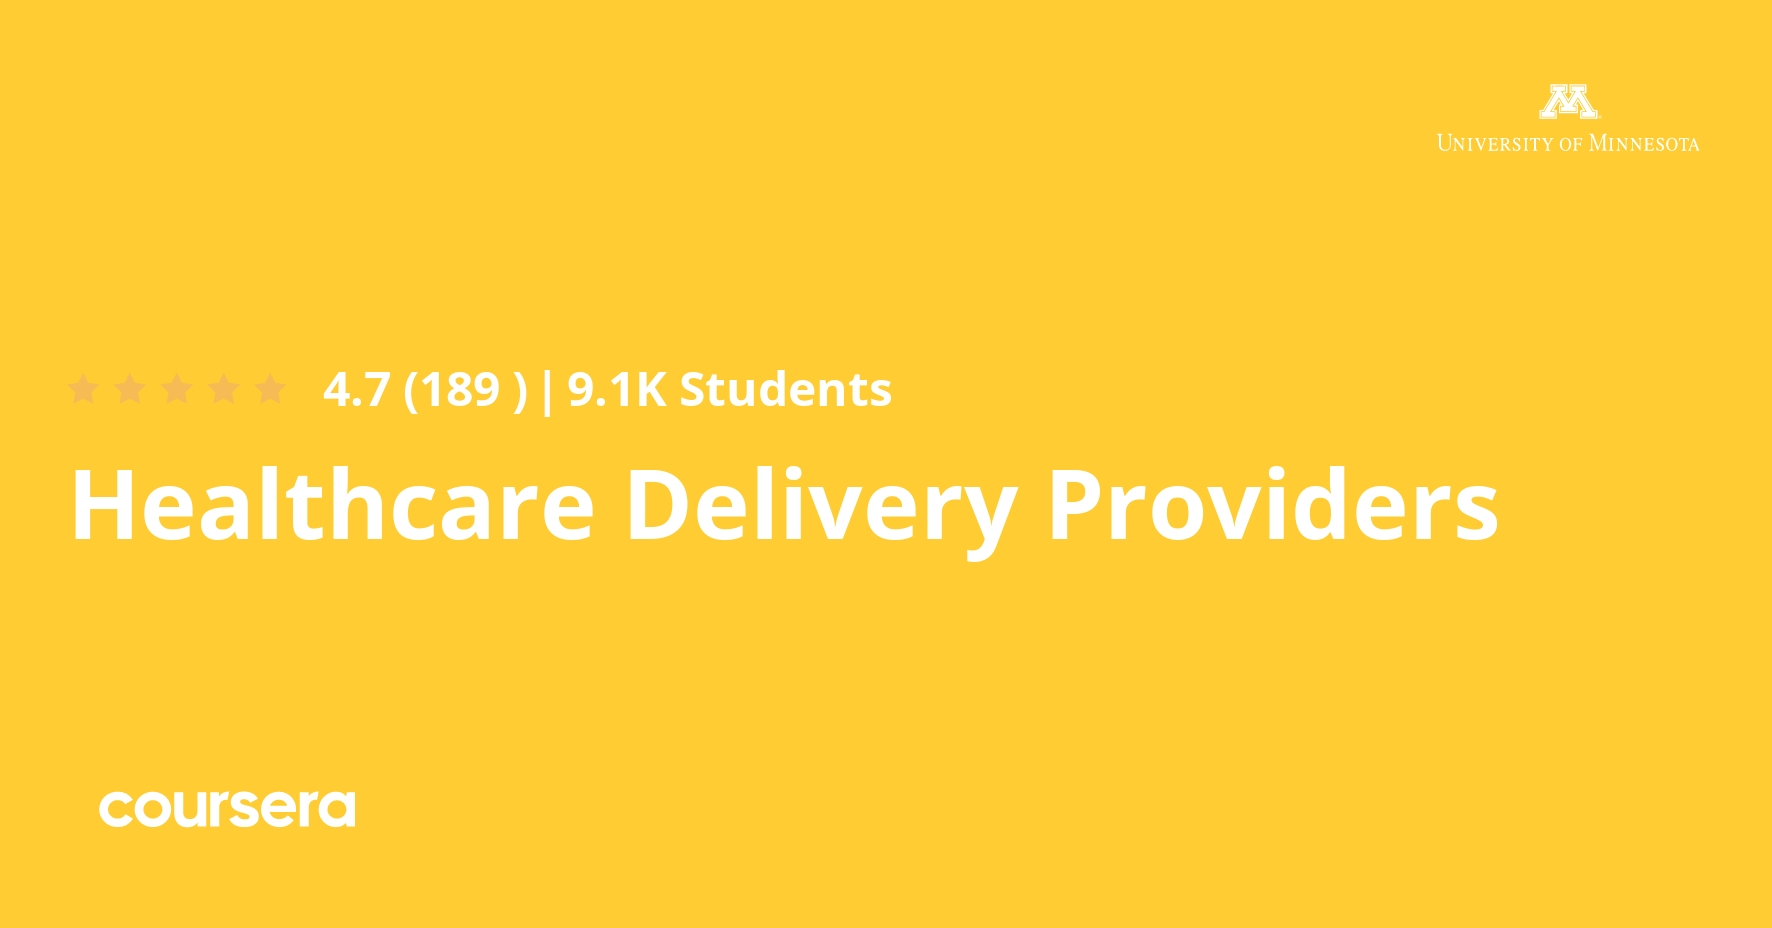 Healthcare Delivery Providers